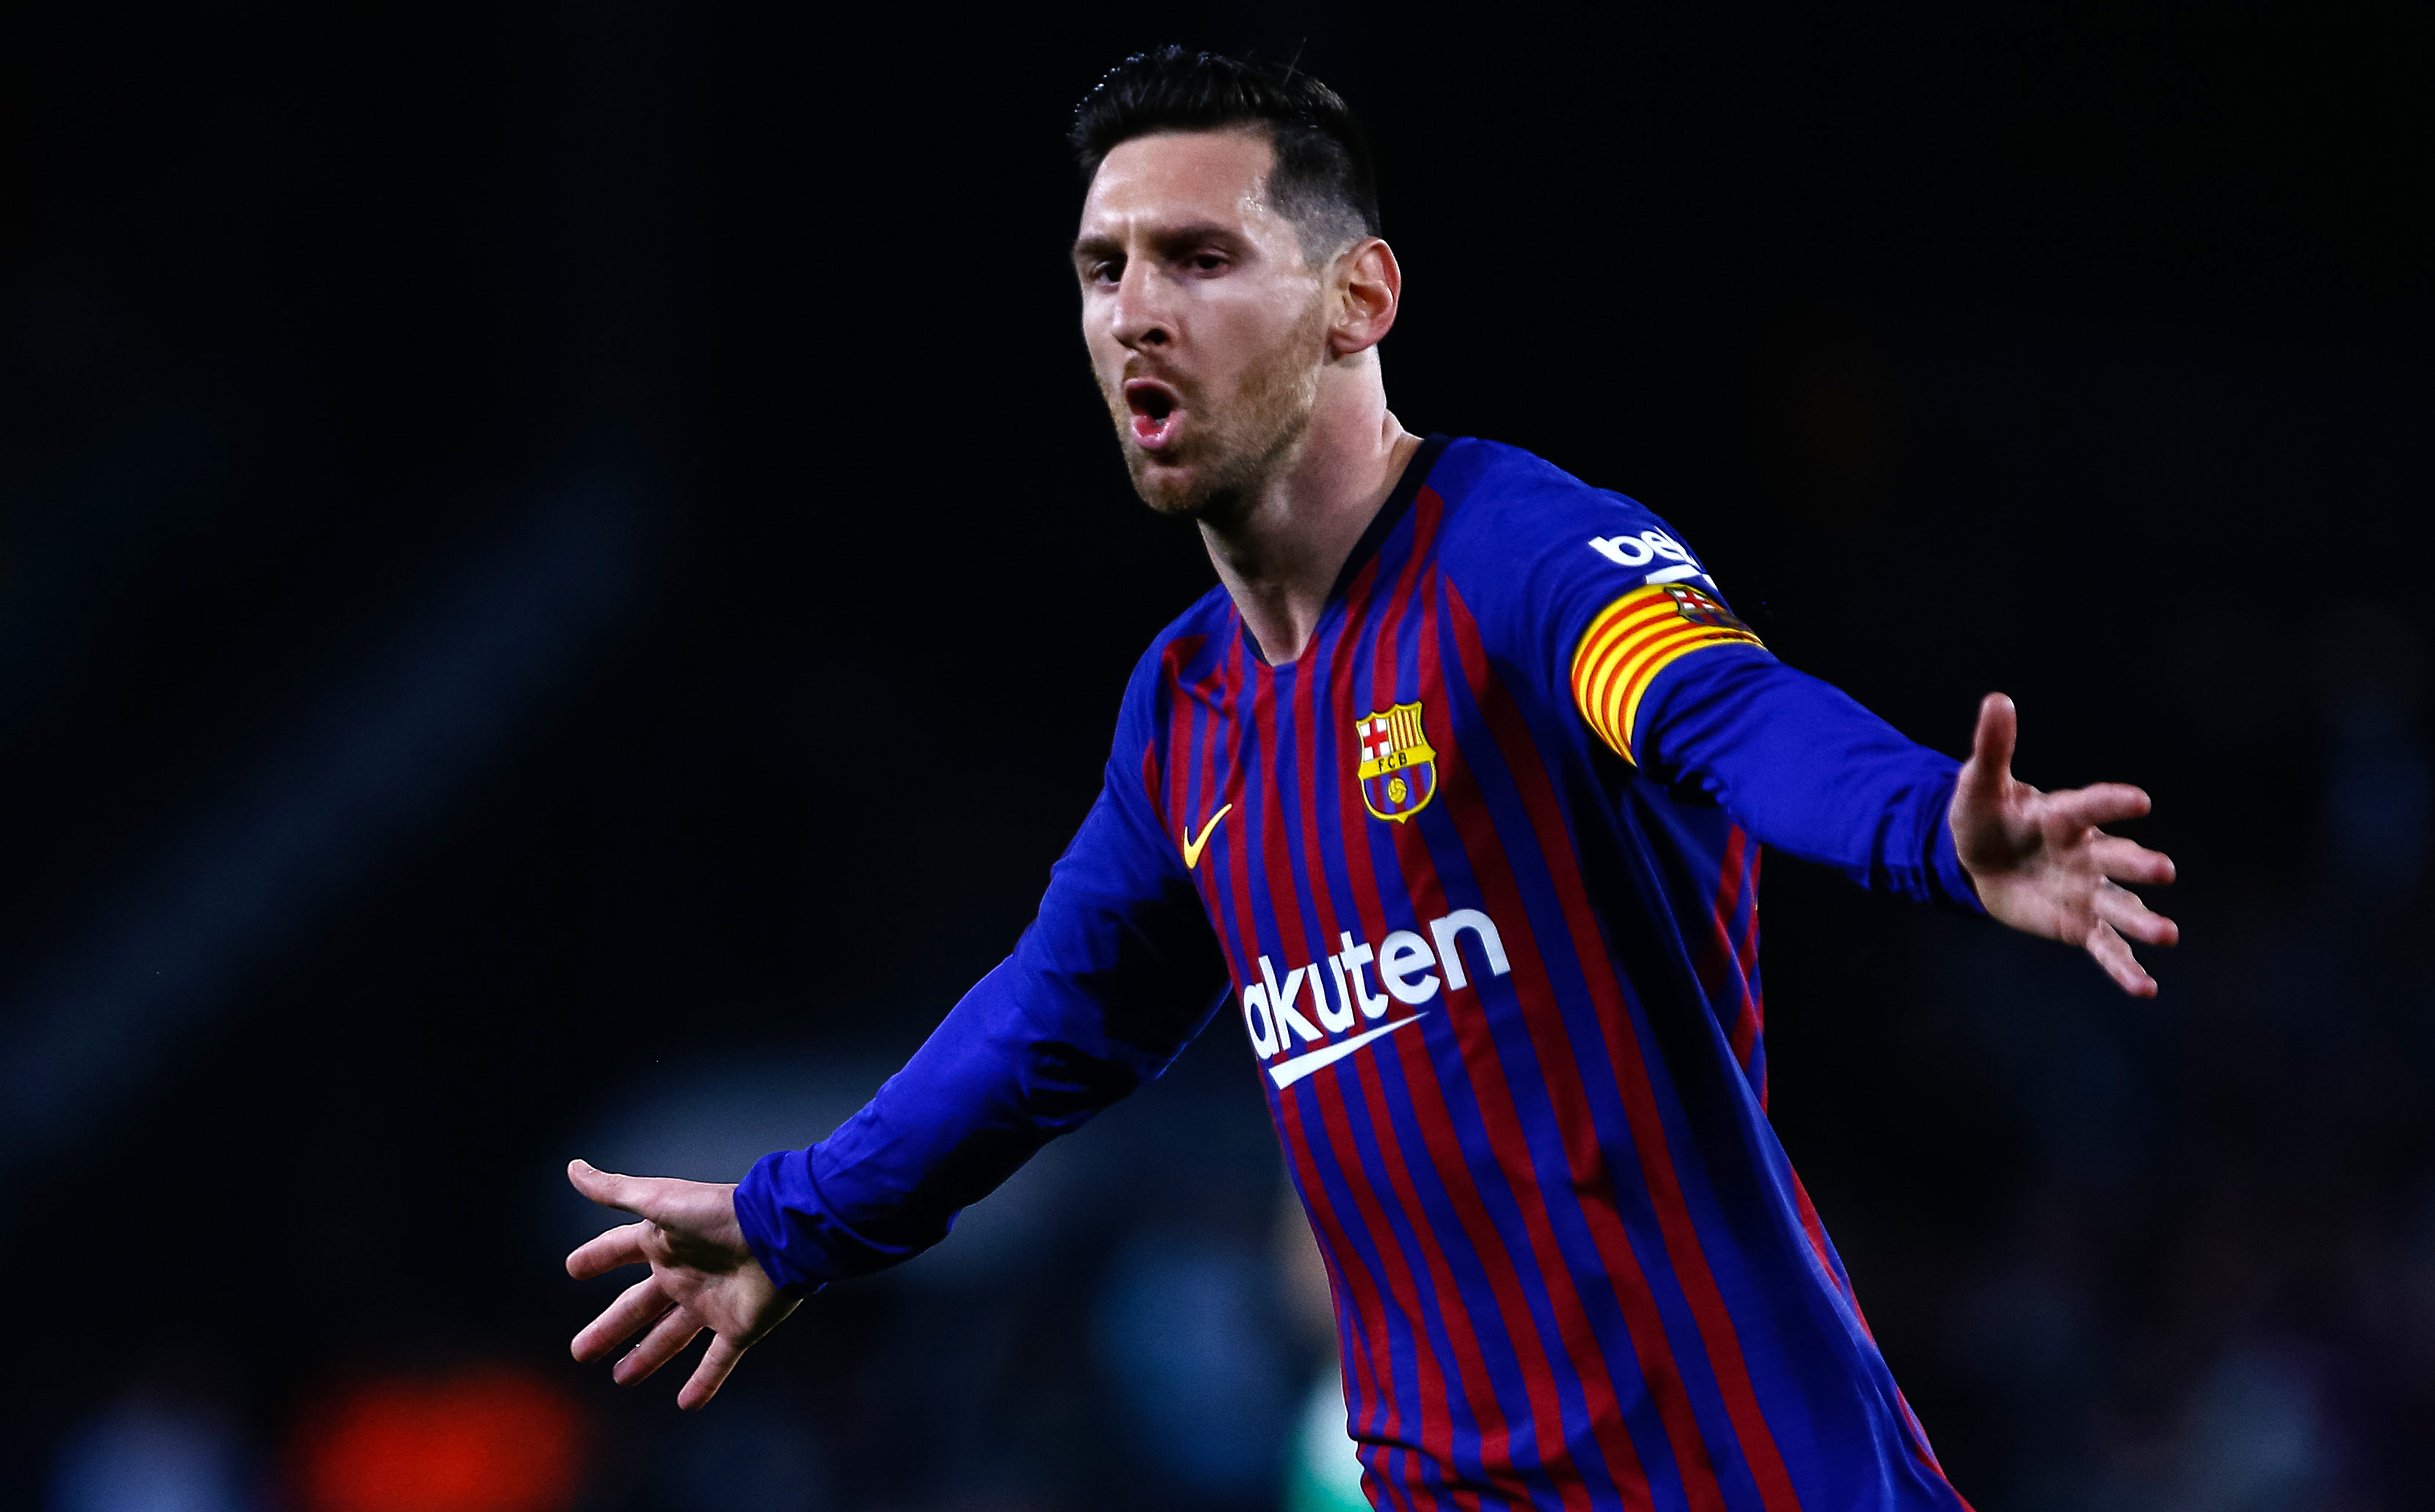 Lionel Messi goal voted greatest Barcelona goal of all time 03/29/2019